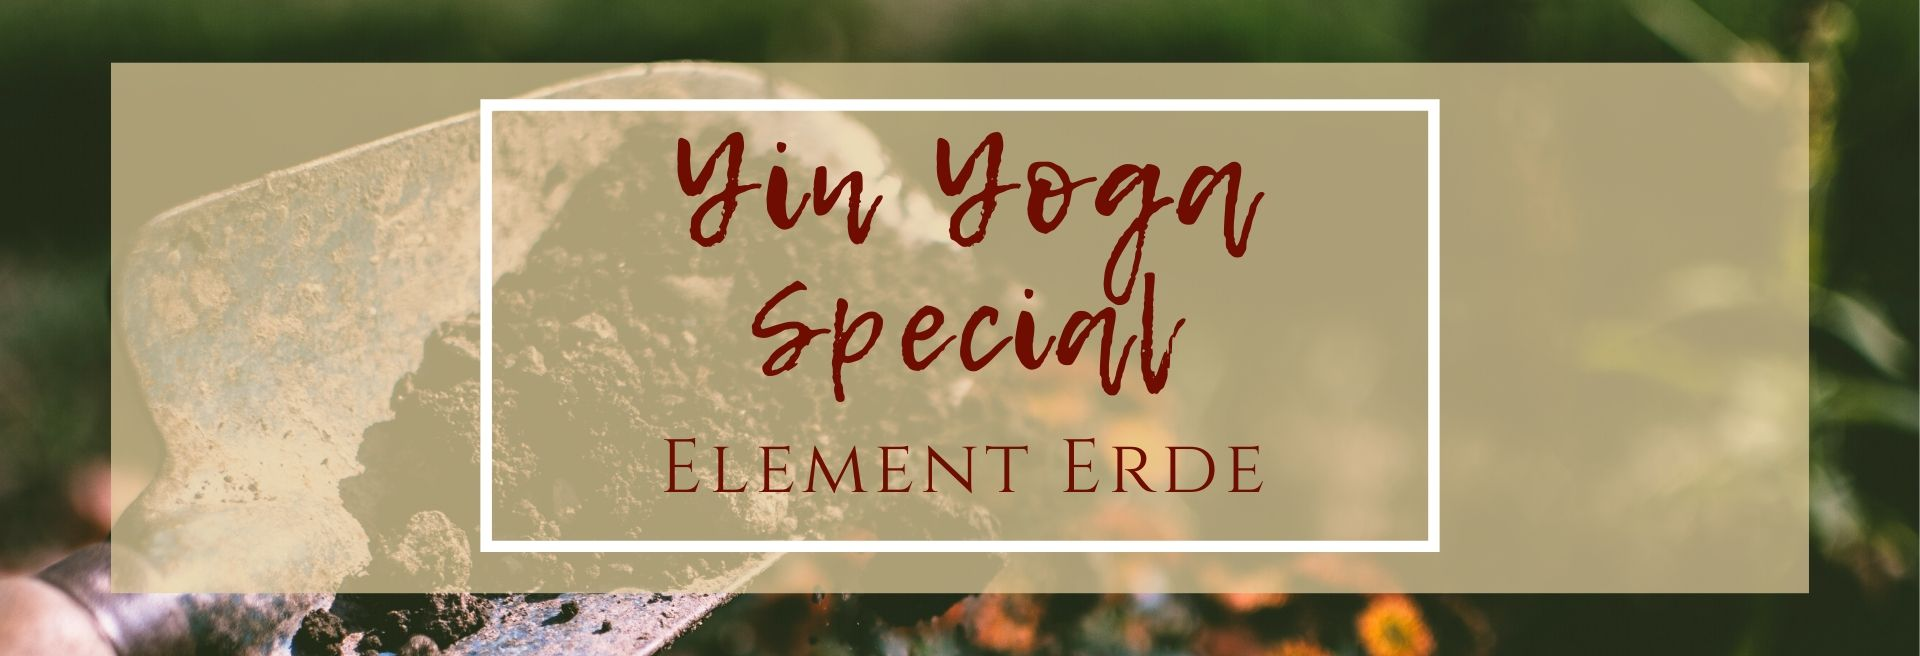 Yin Yoga Special Element Erde